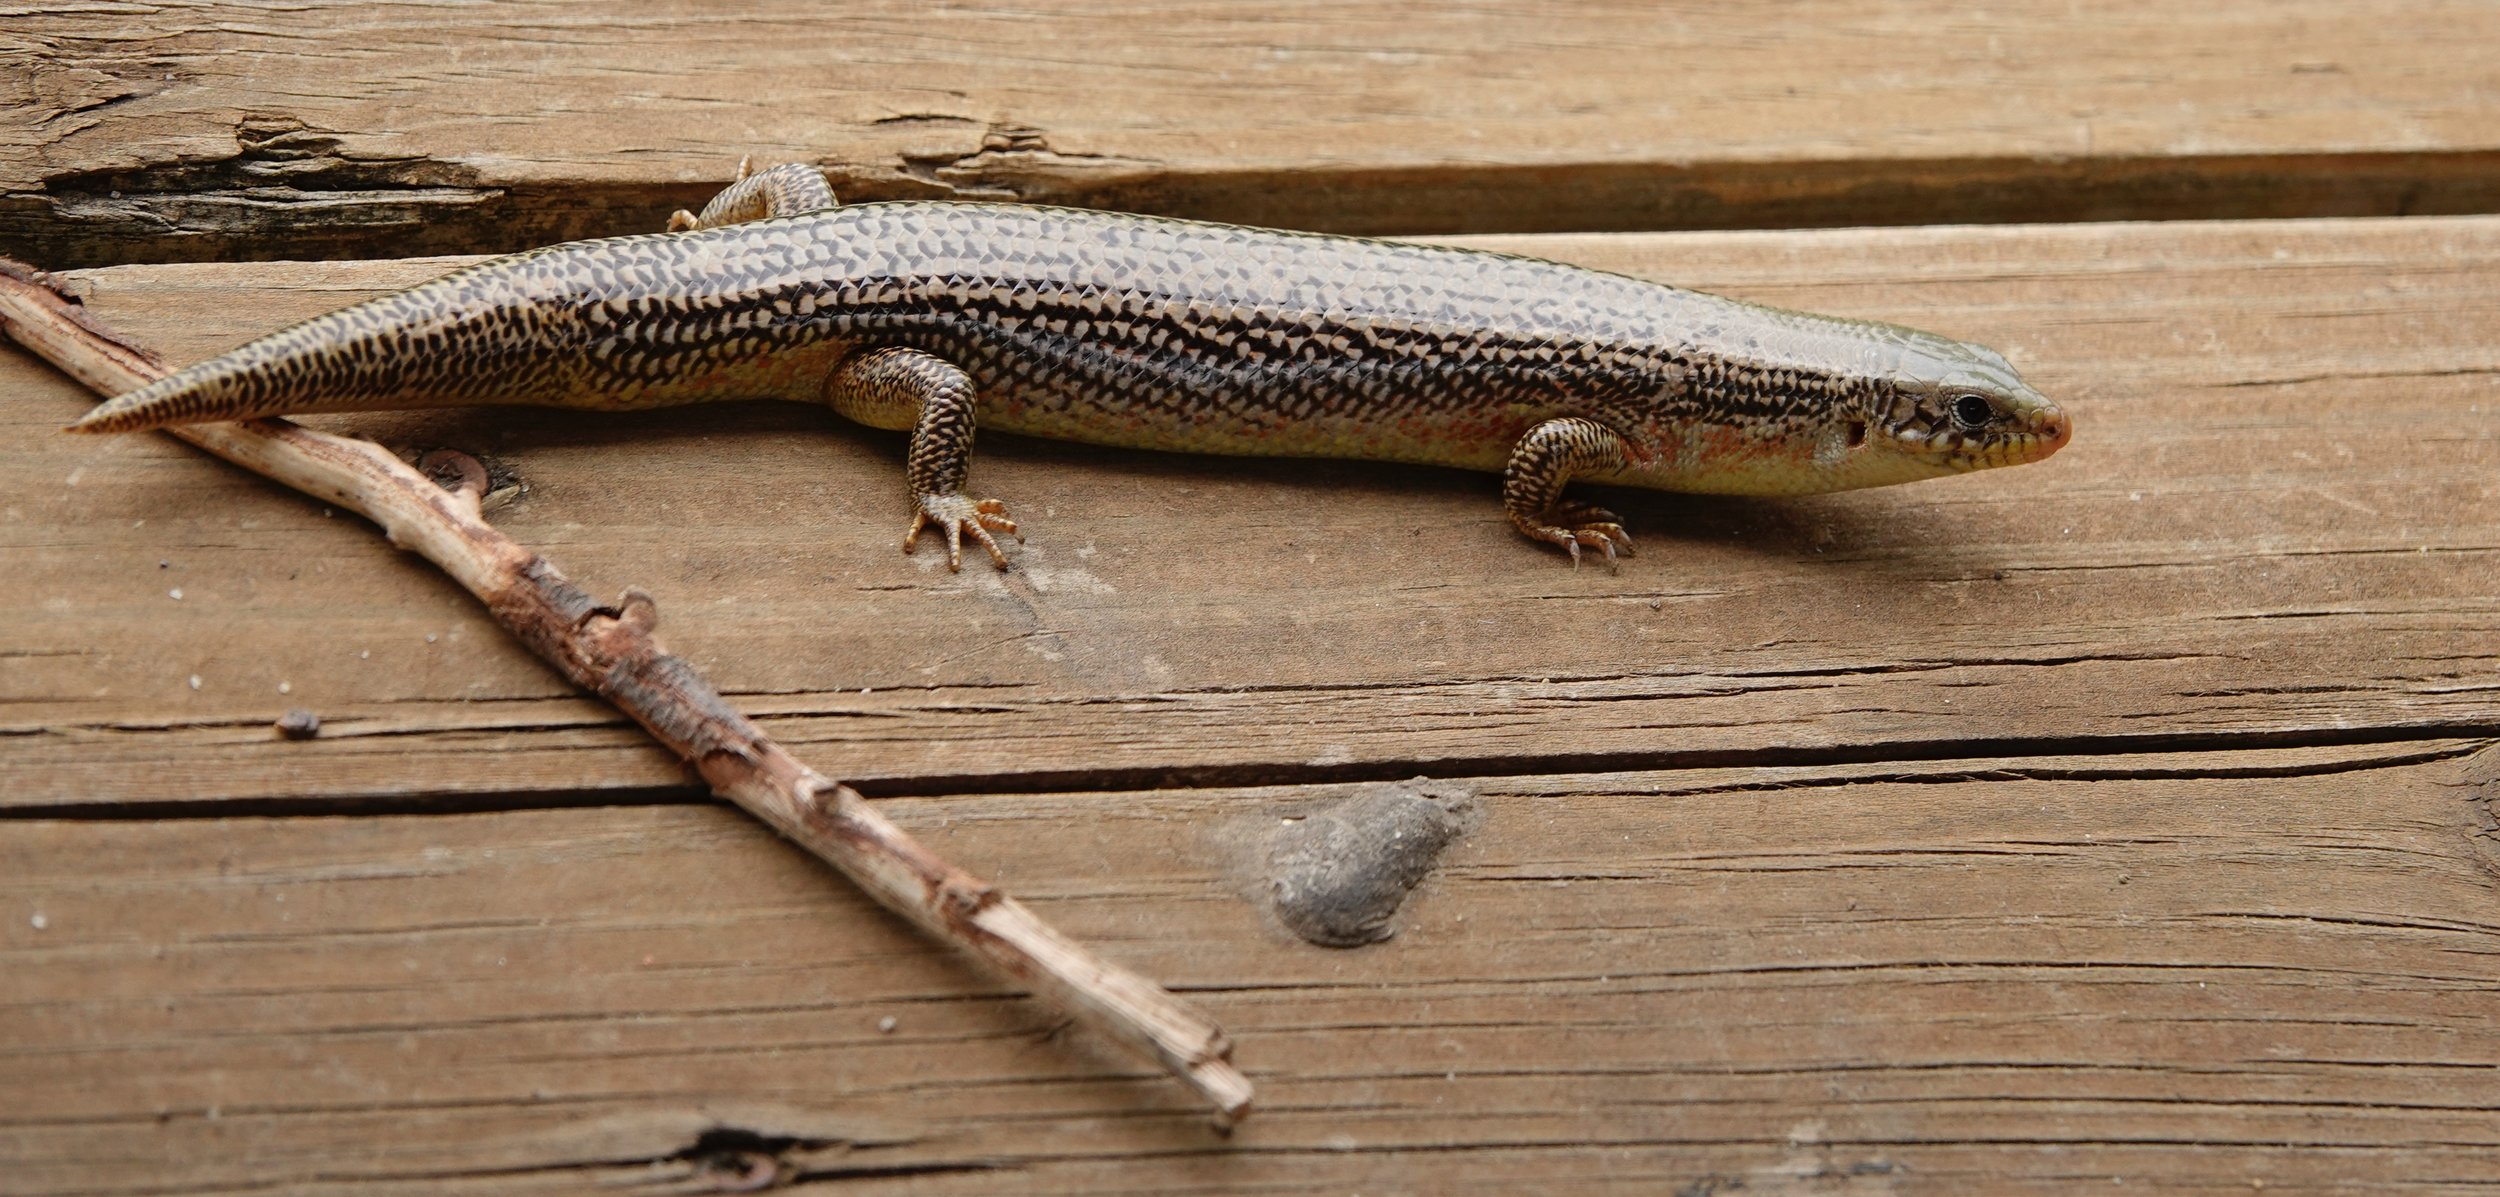 I pointed out a skink that looked as if someone had been trying to teach it to fetch a stick when the Kansan I 'd been hiking with, told me the animal was a sign of rain. I smiled in disbelief, but it rained.